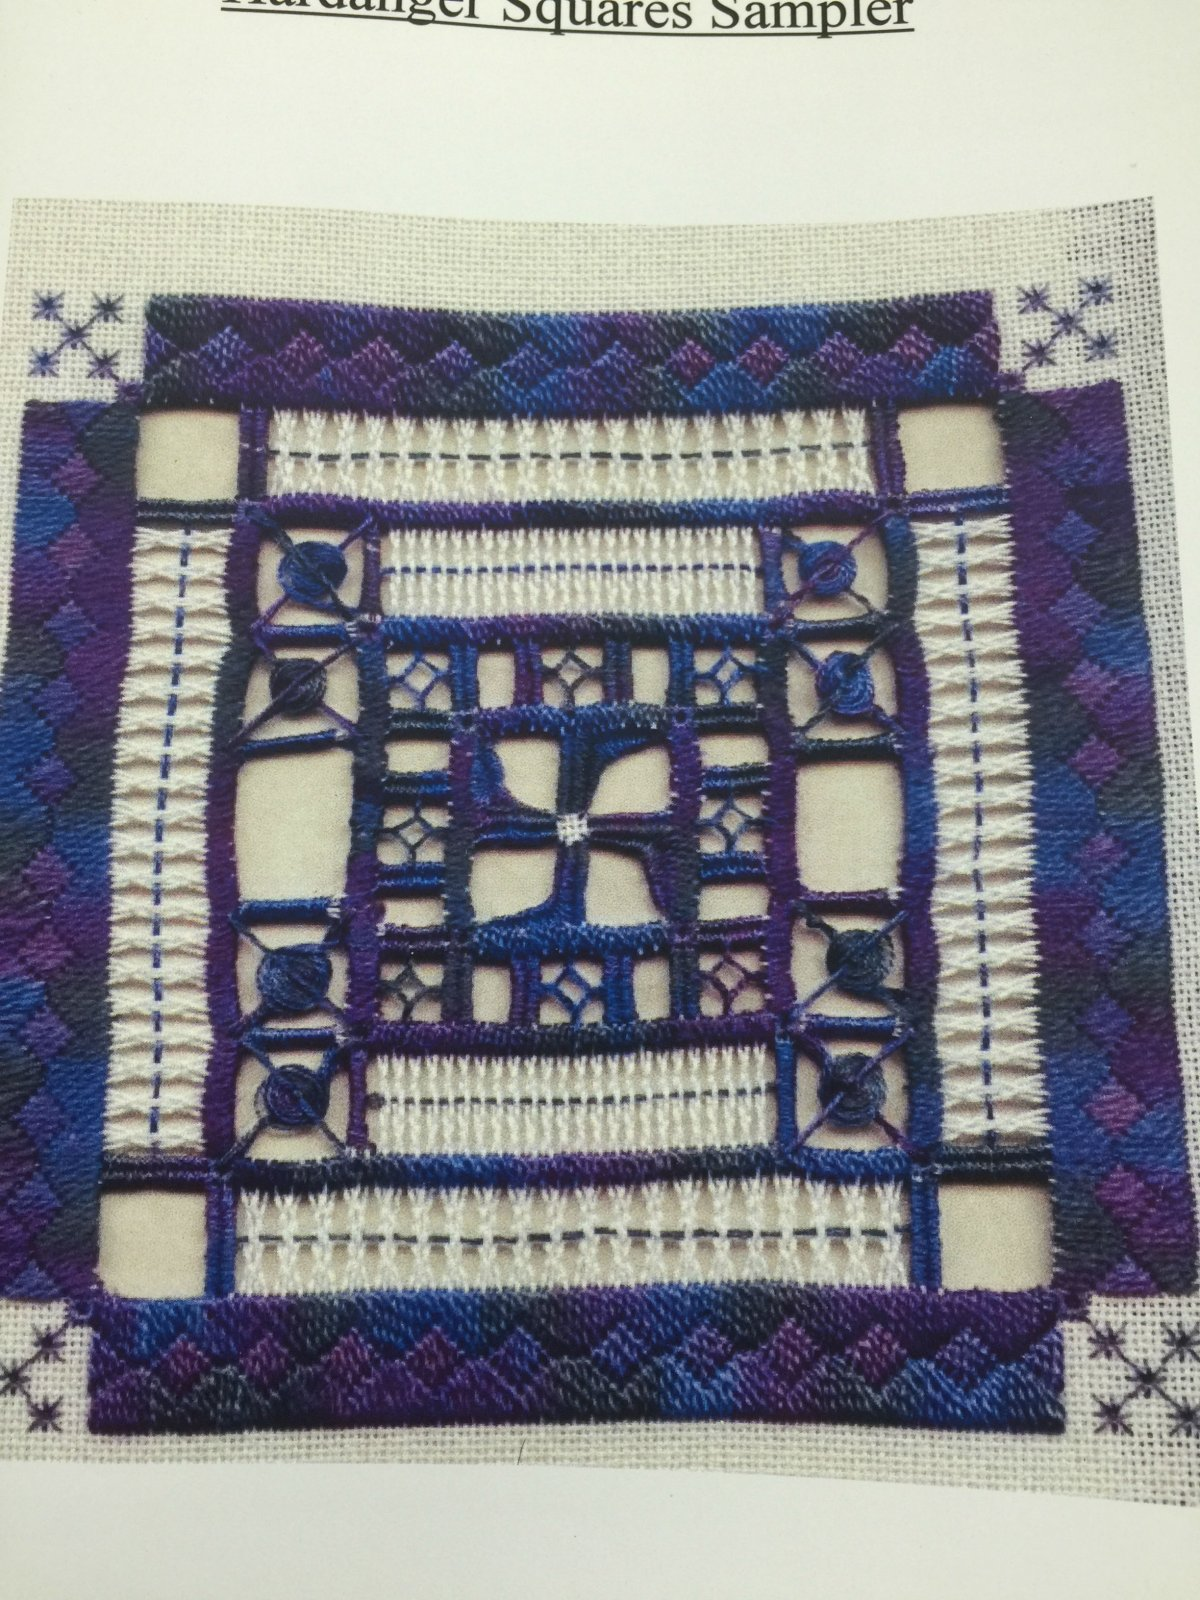 Adventures in Stitching Hardanger Squares Sampler